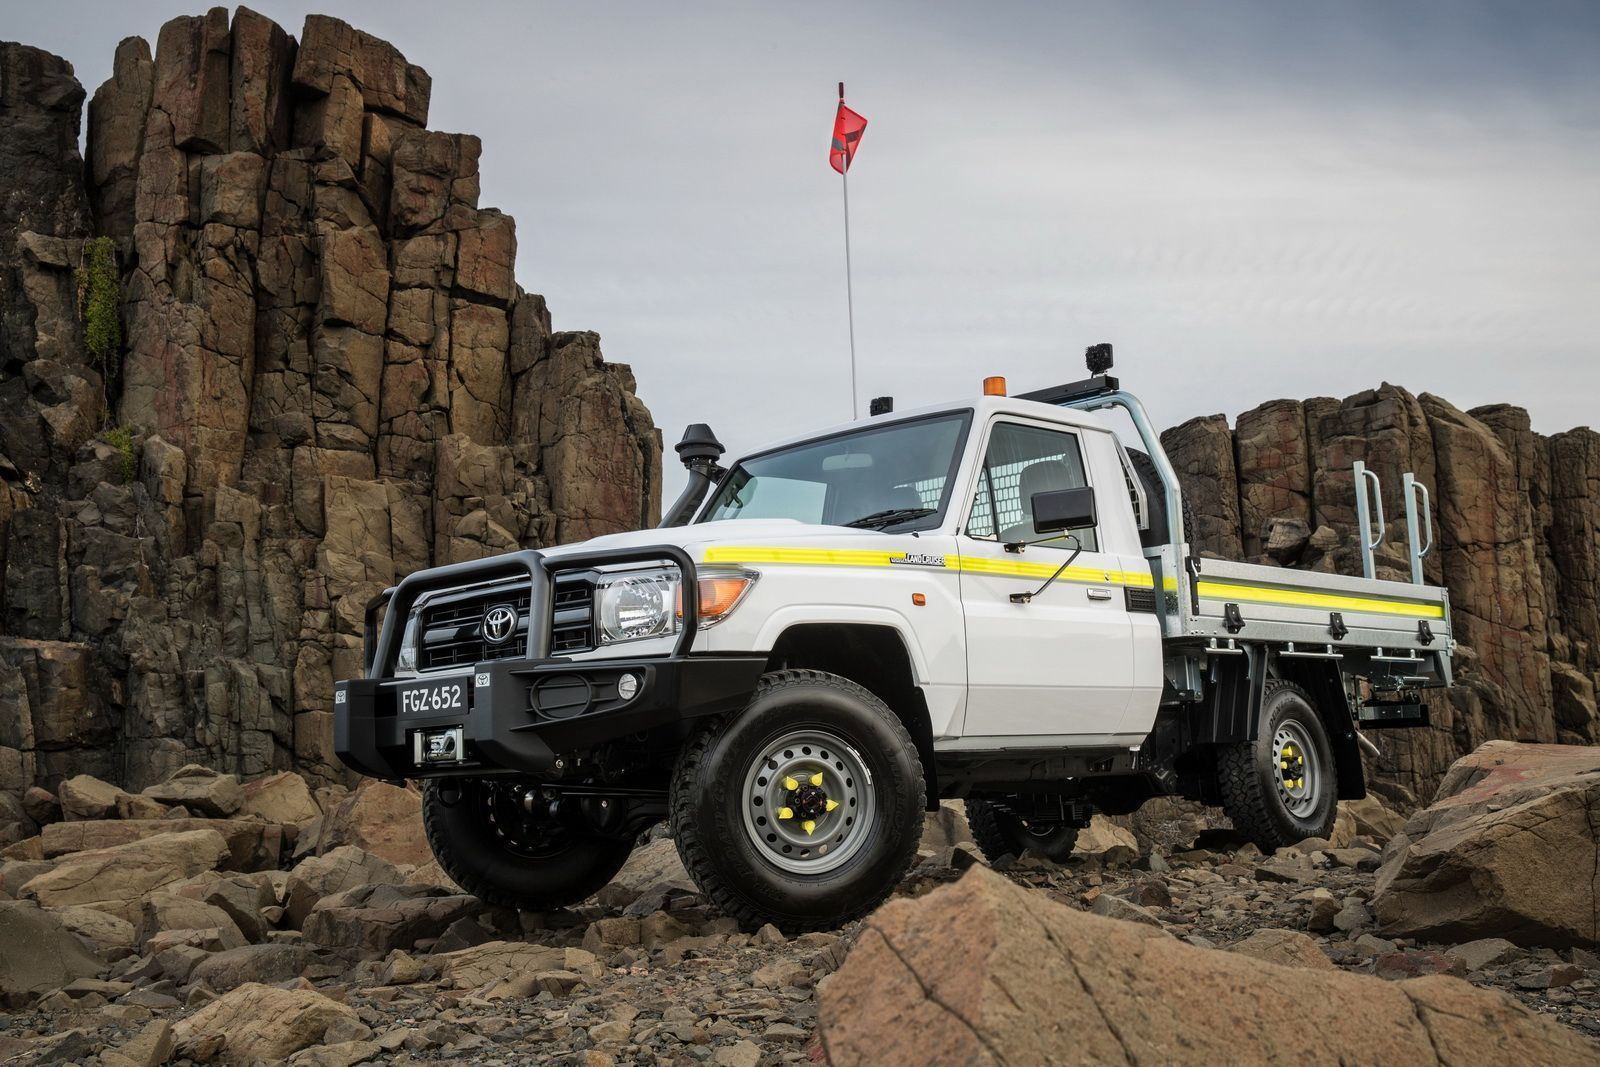 2016 Toyota LandCruiser 70 Series Single Cab Chassis with Toyota Genuine Industry Accessories